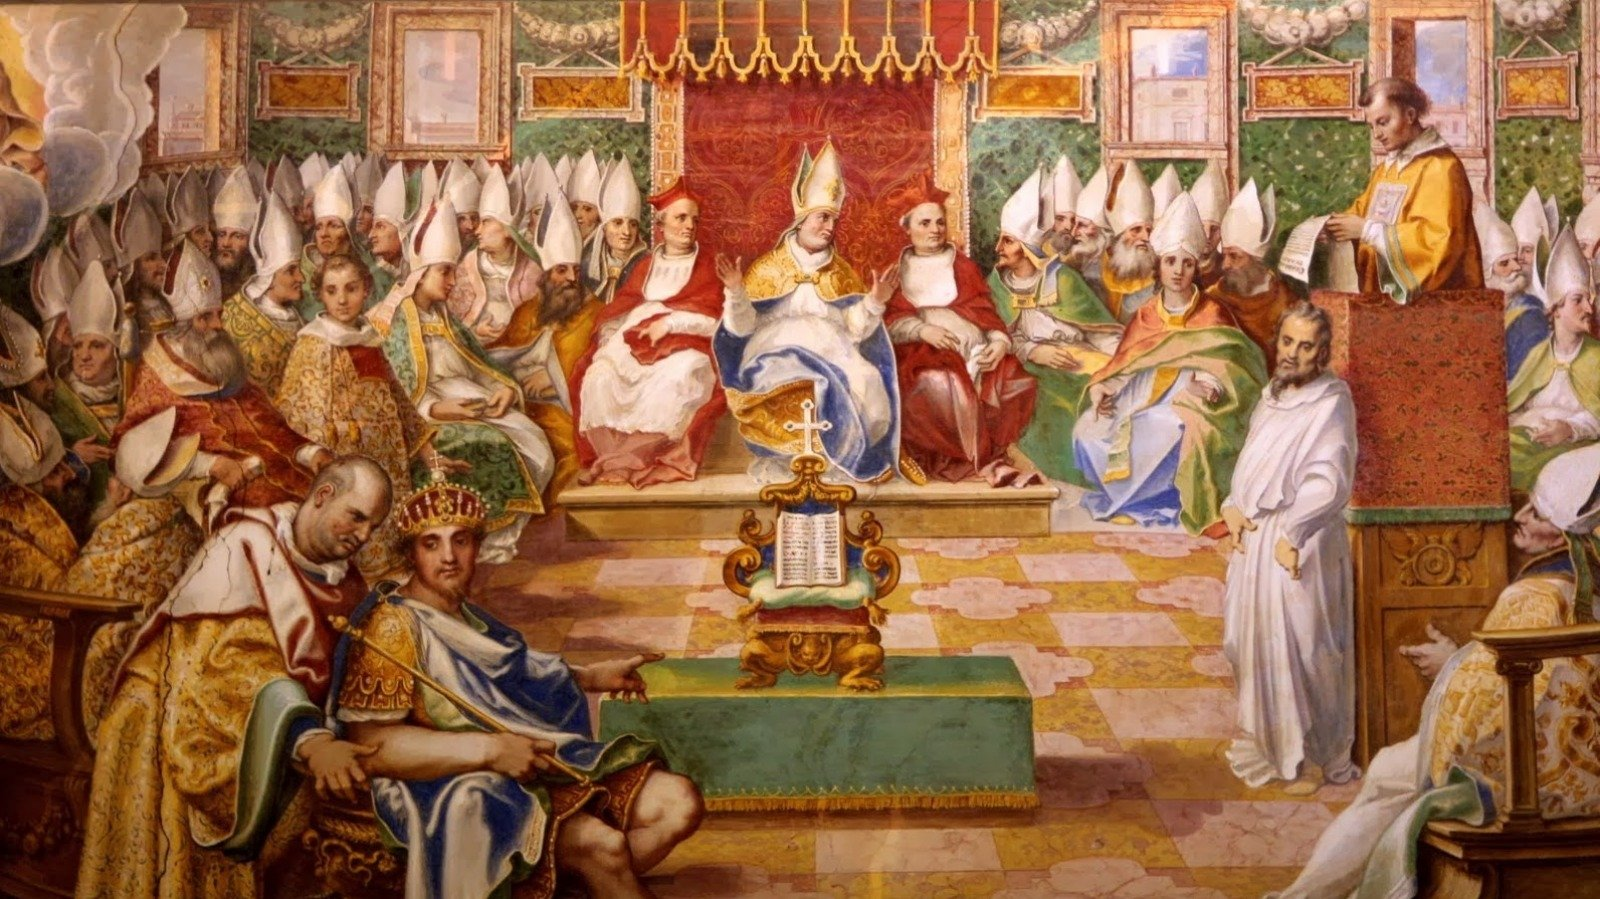 The Messed Up Truth Of The Council Of Nicaea